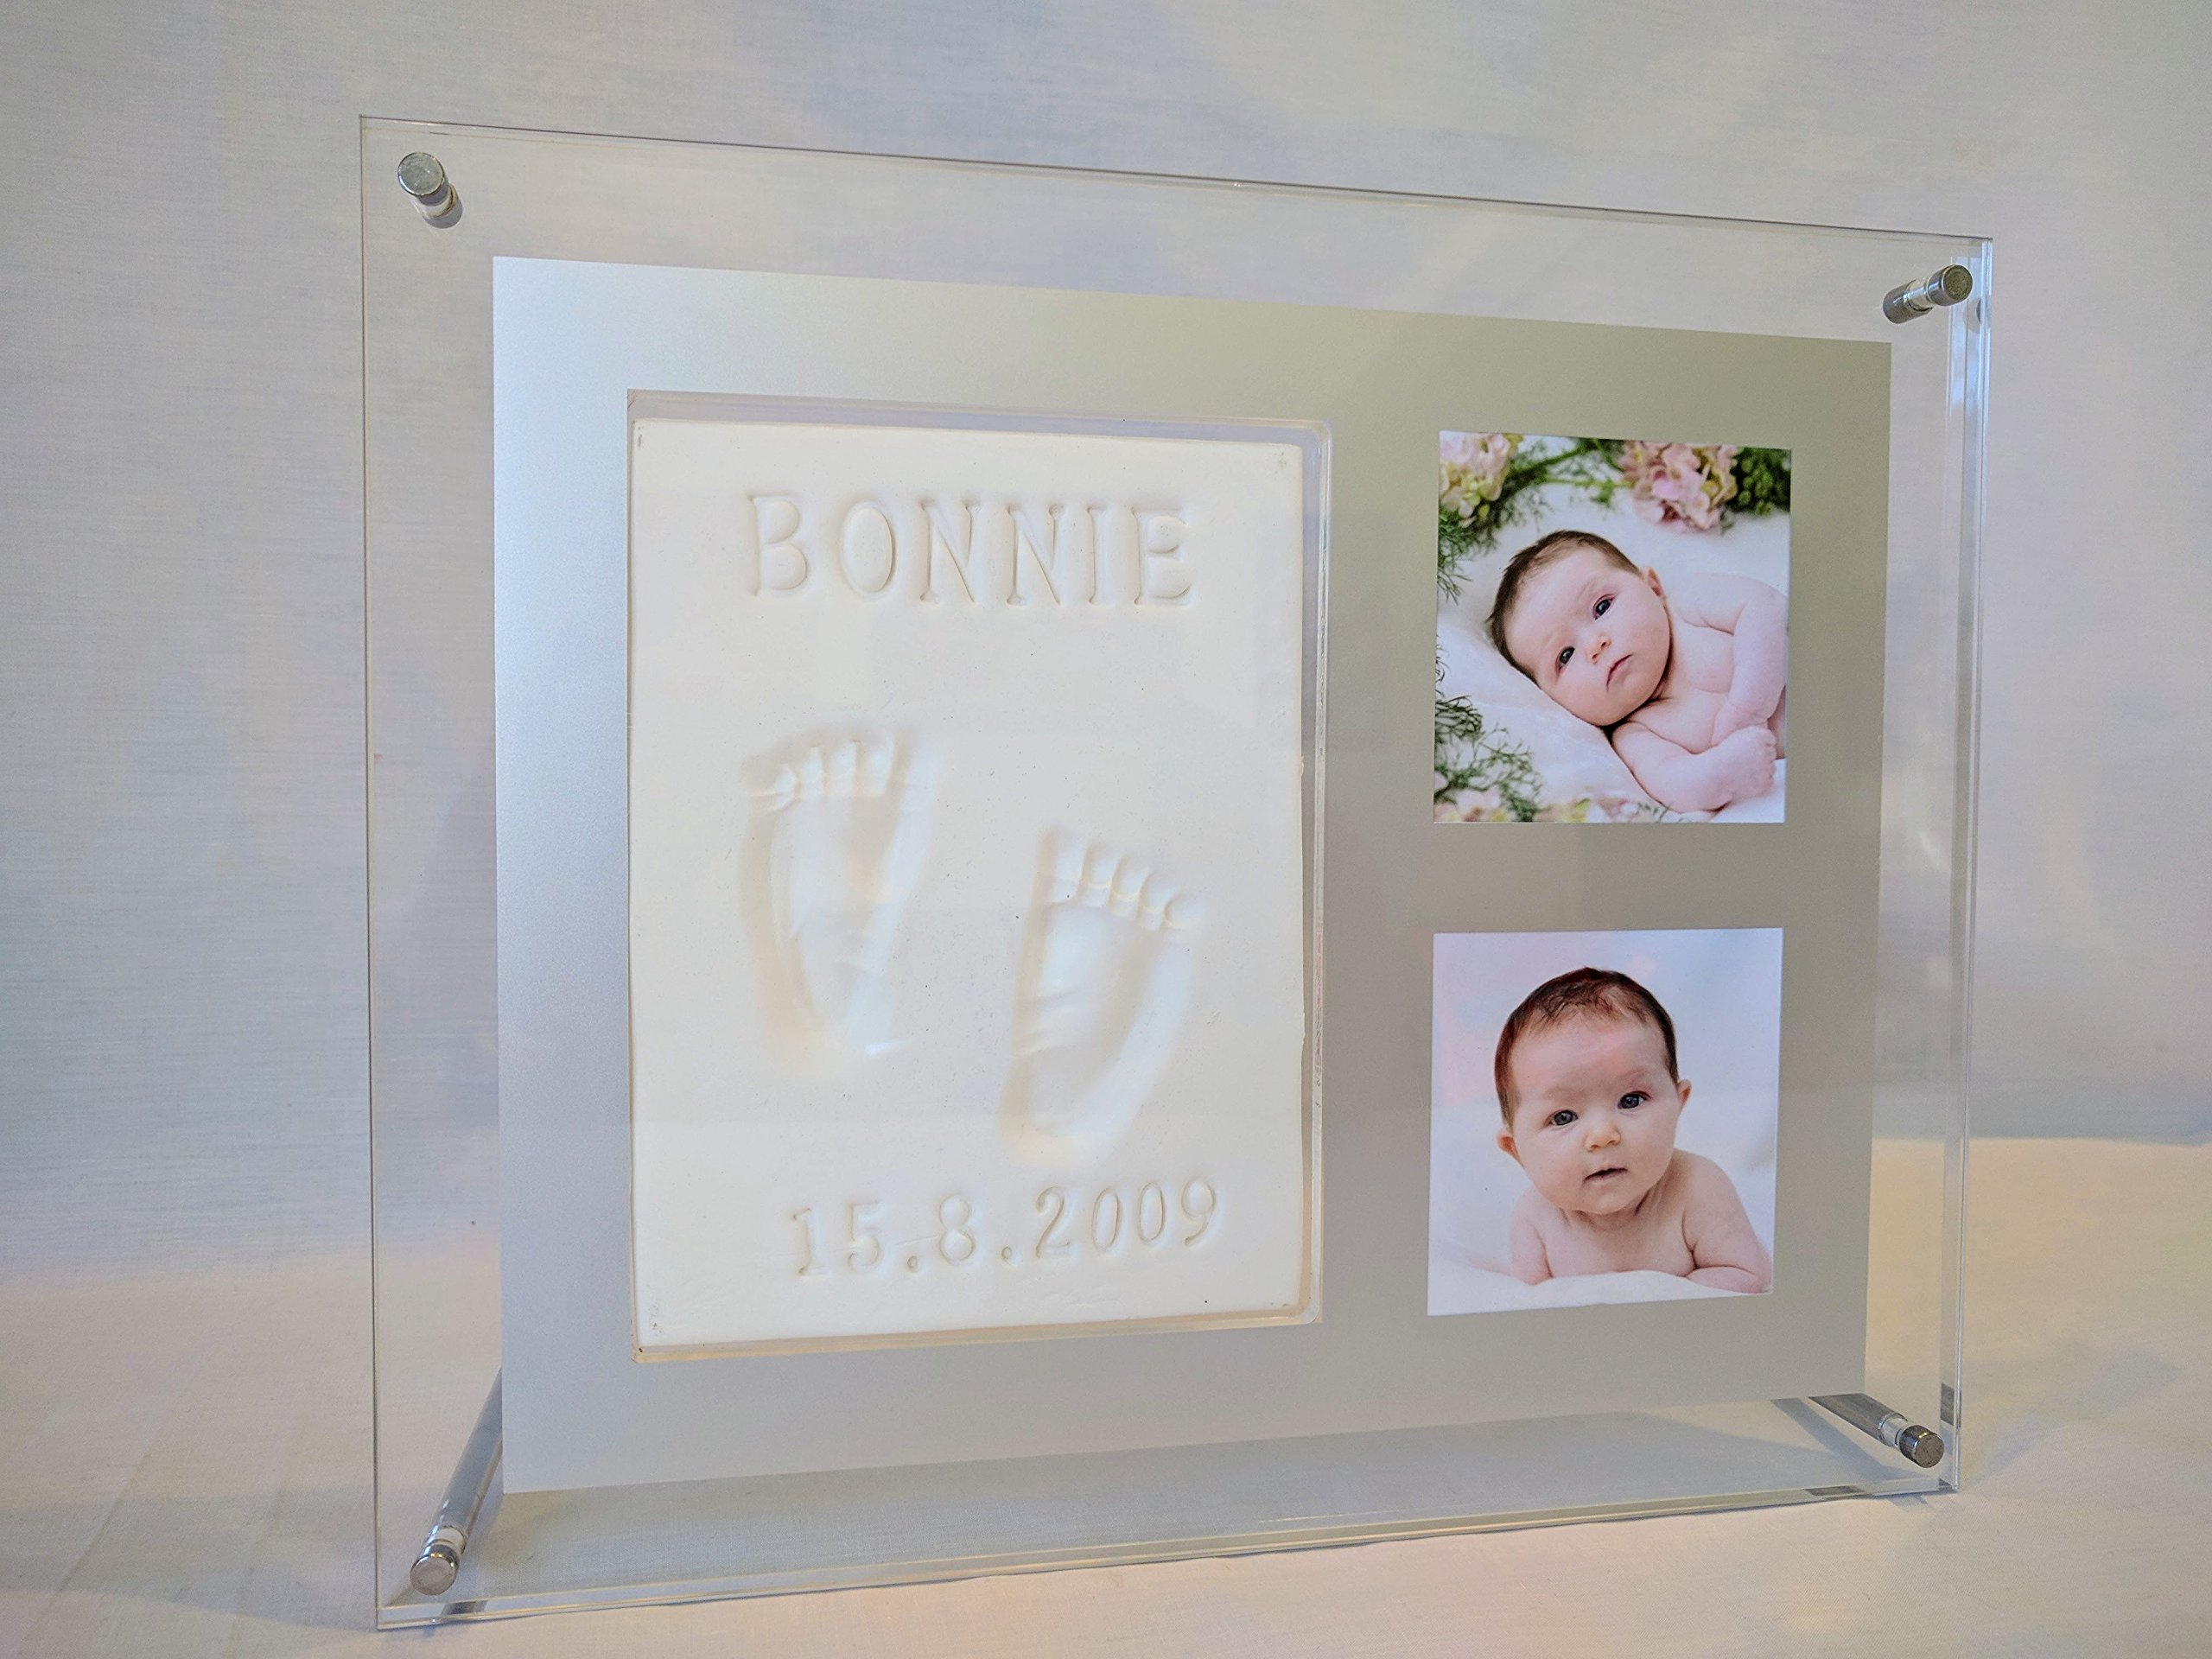 BABY HAND & FOOTPRINT PICTURE FRAME KIT WITH STAINLESS STEEL STANDS. Capture In Clay your precious memories. Perfect baby shower idea, baby registry for girls and boys & animal lovers.